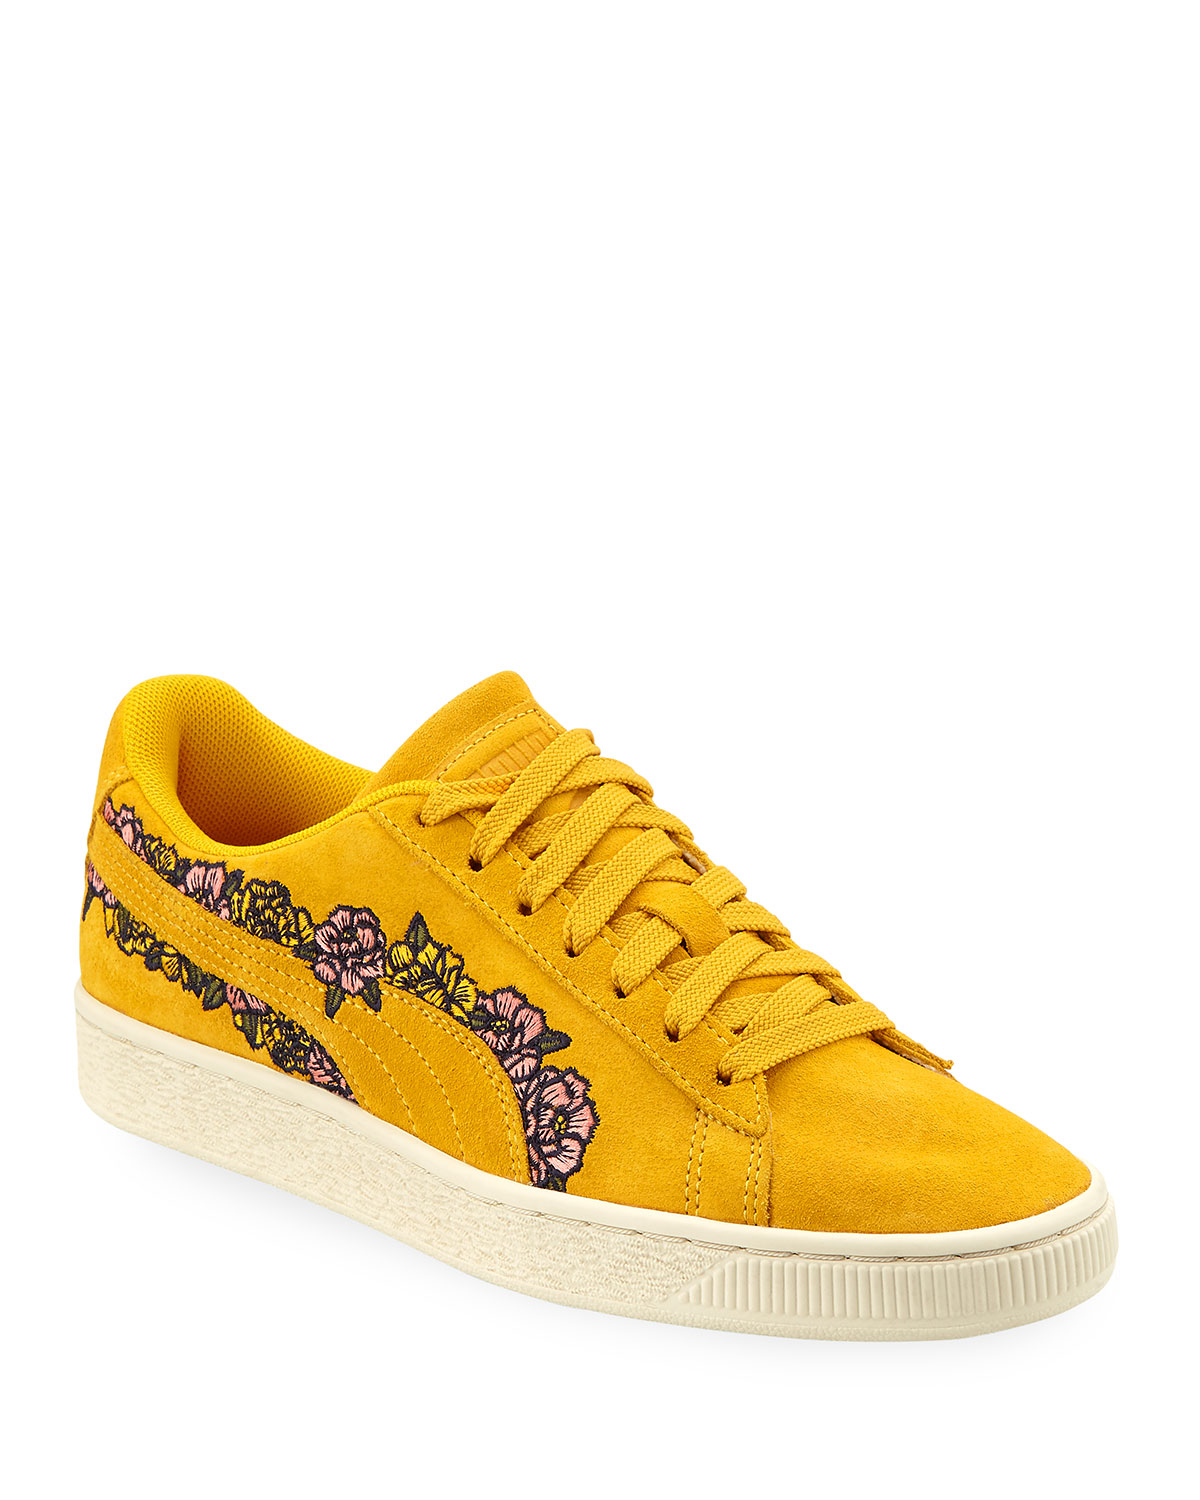 292d15af9d374 Basket Suede Embroidery Sneakers